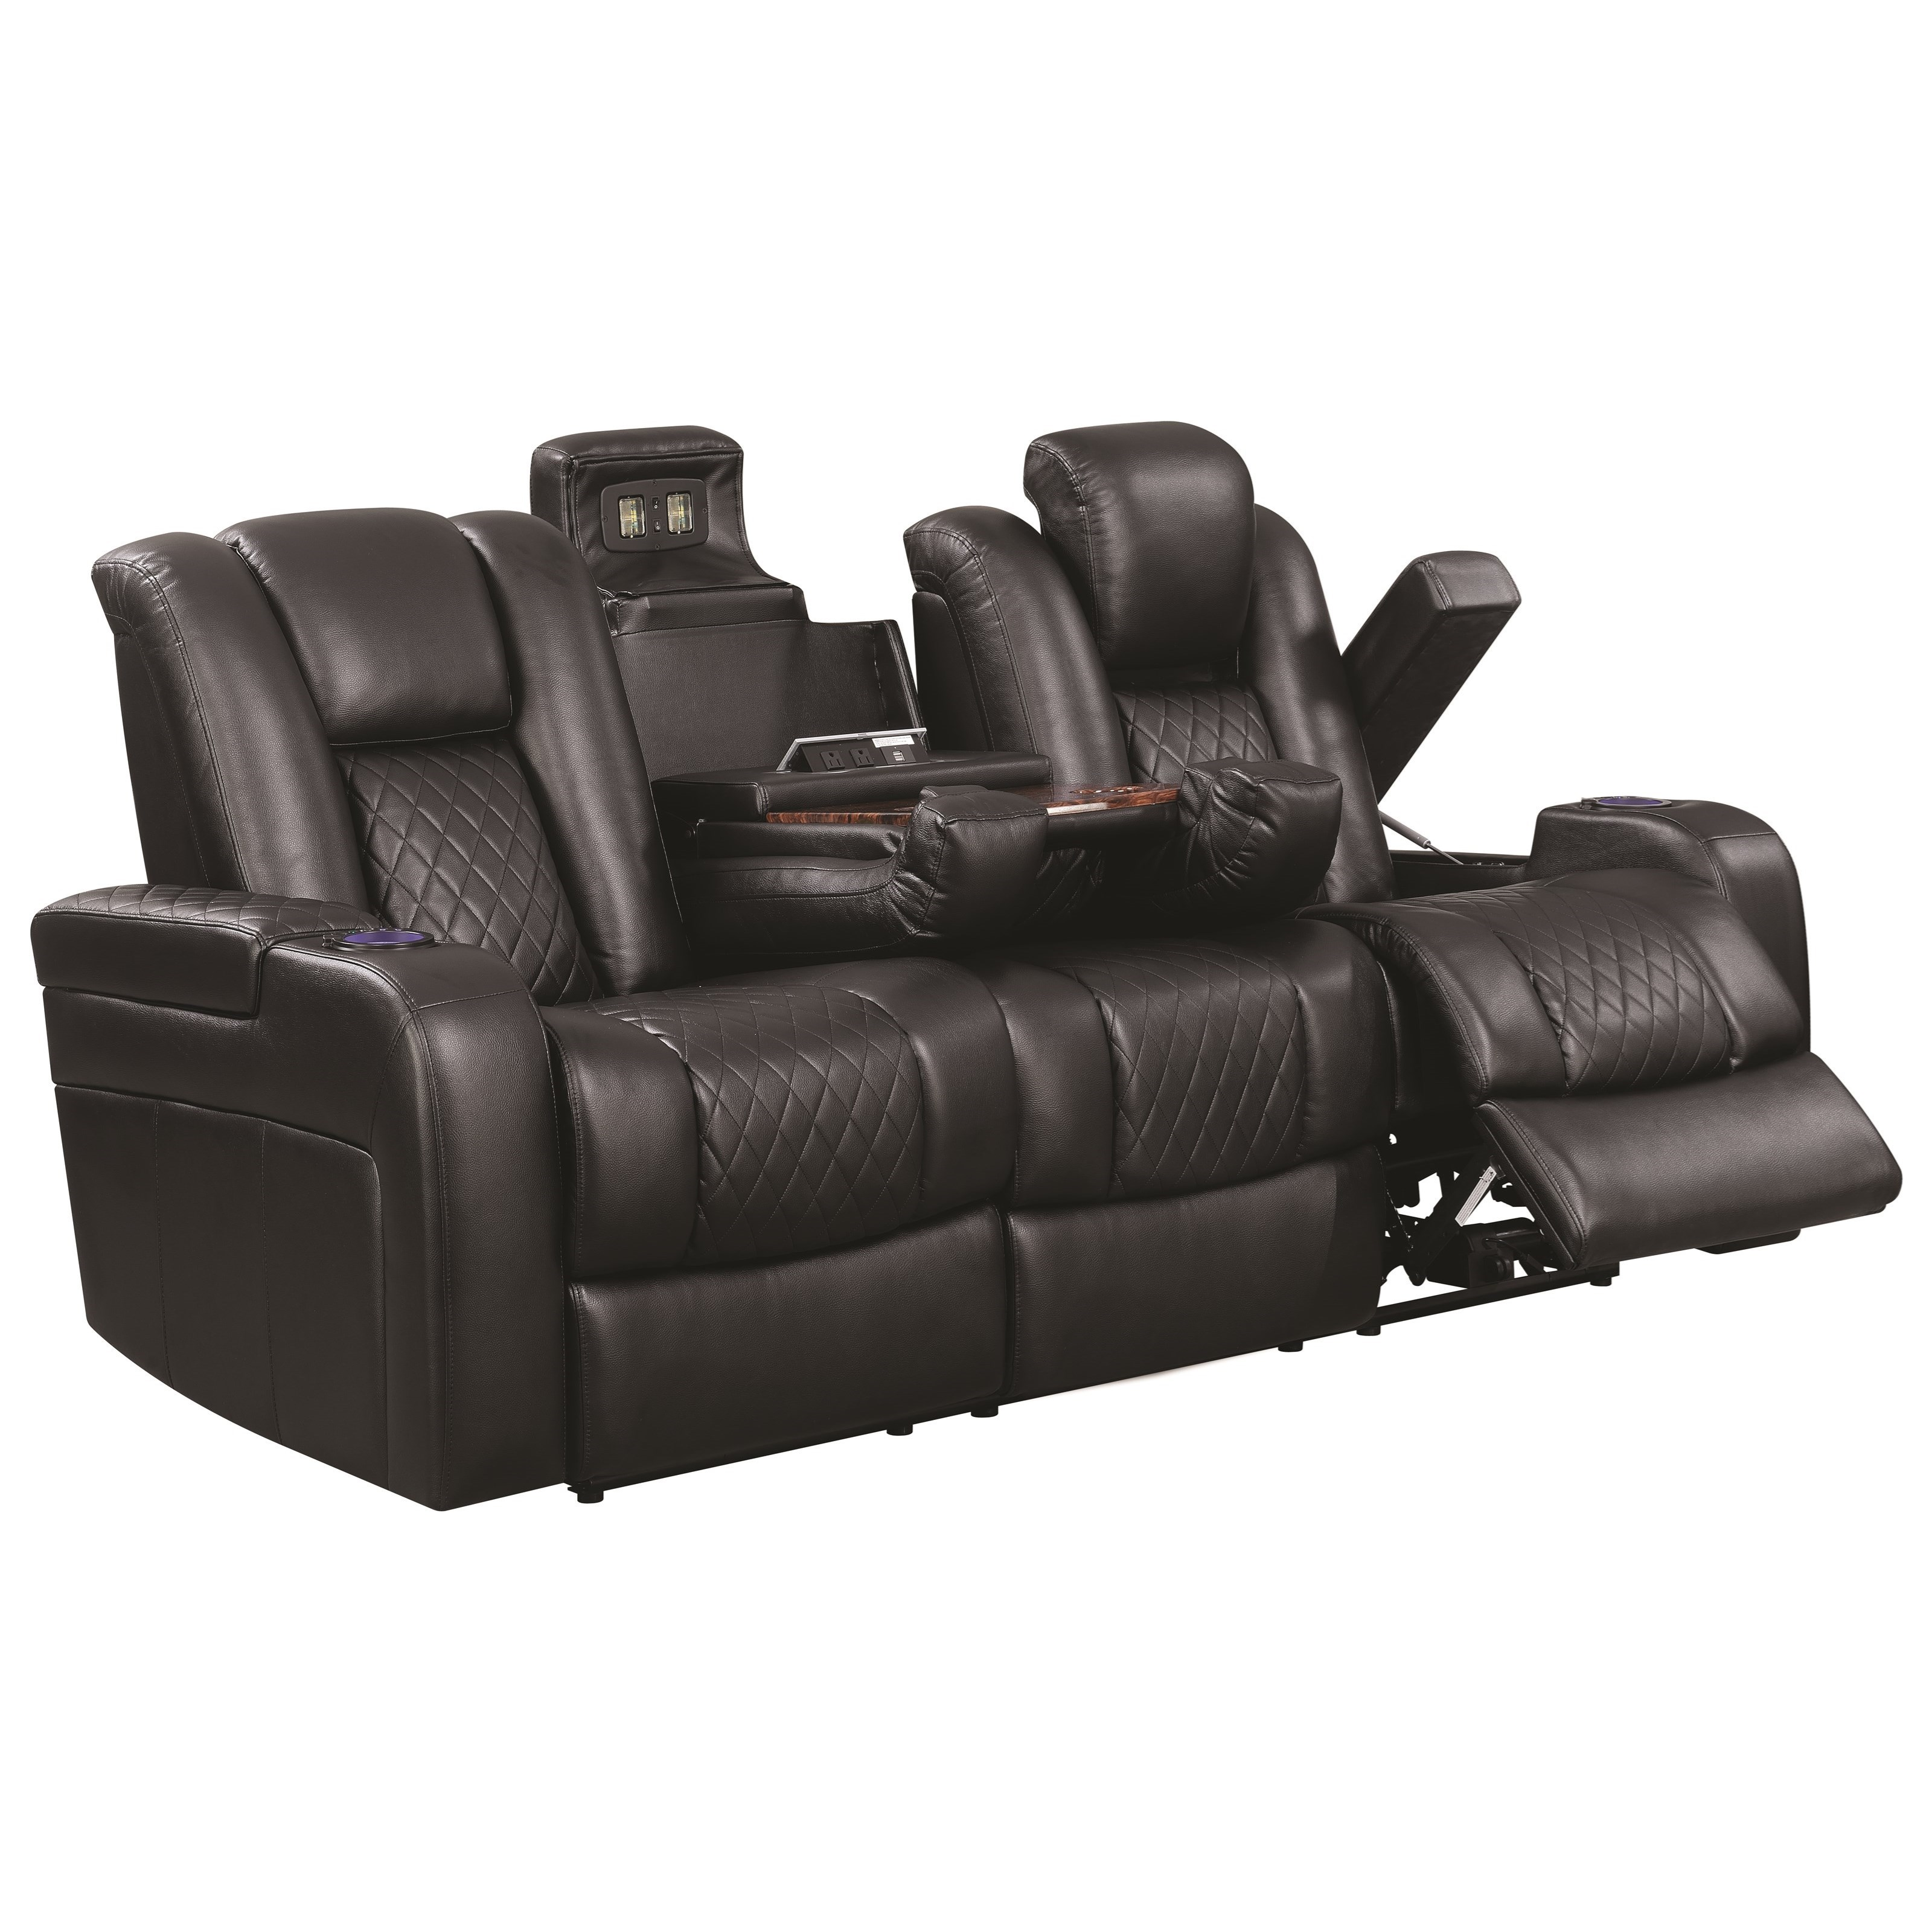 Couch Sofas Delangelo Theater Power Leather Reclining Sofa With Cup